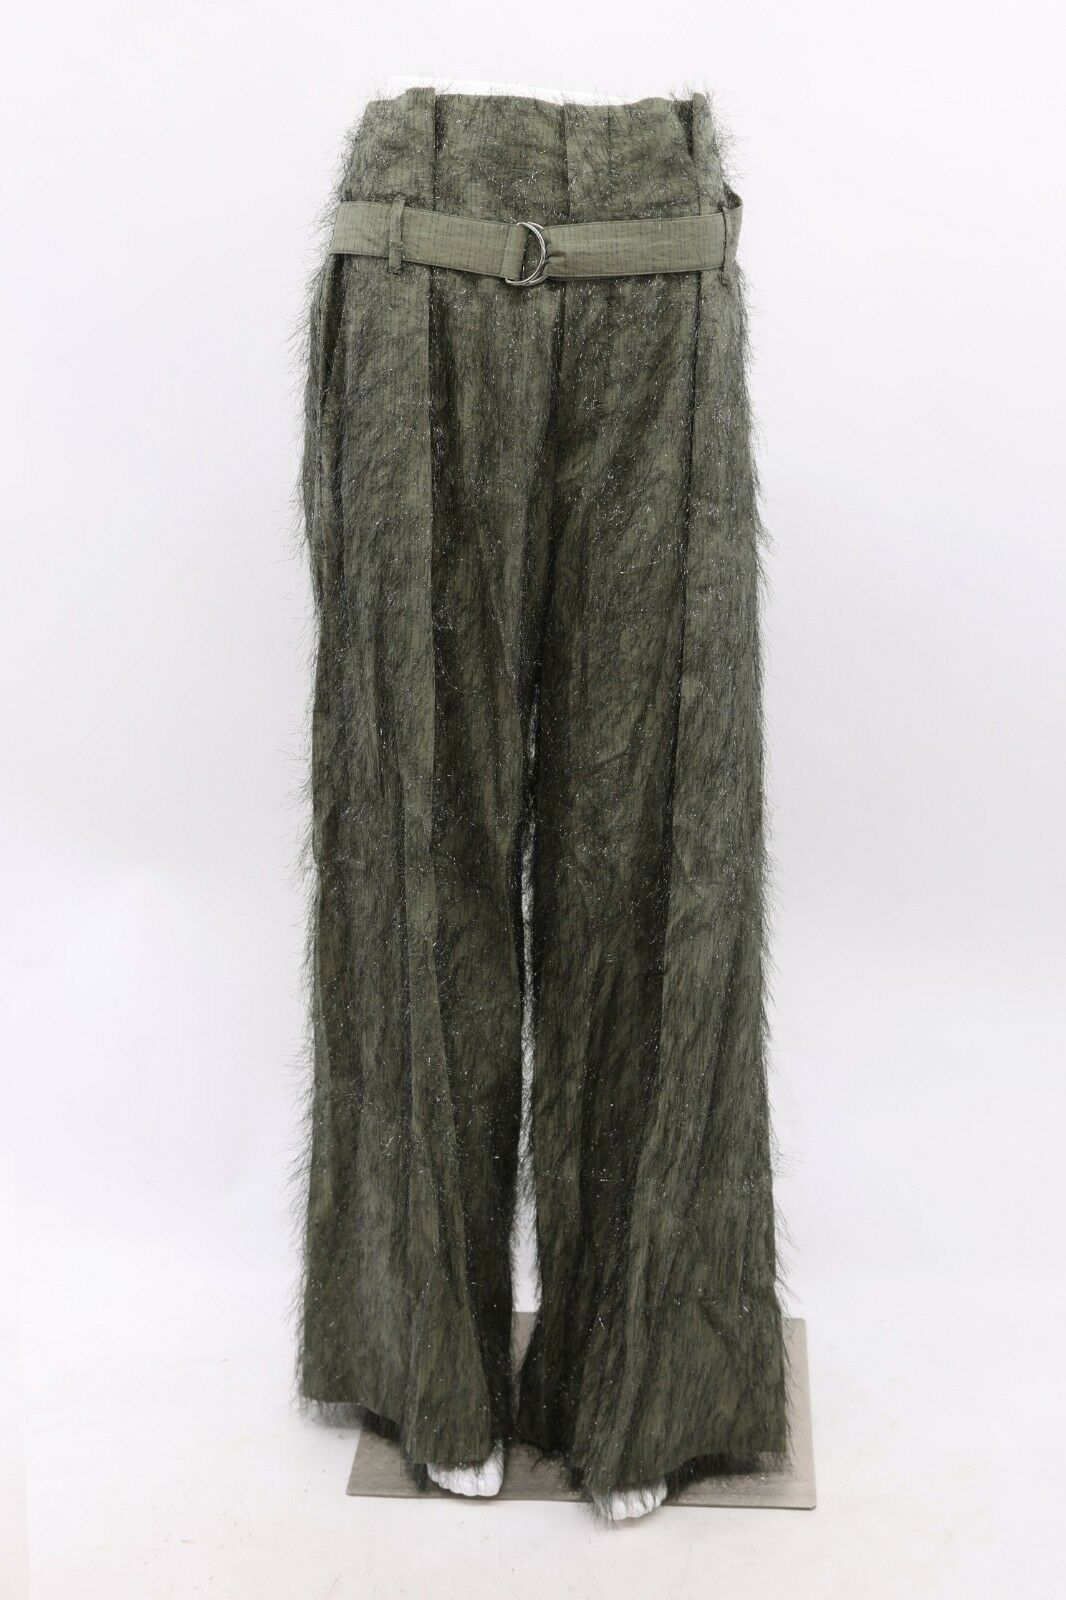 NWT 1645 Brunello Cucinelli Shimmery Fringed WideLeg Belted Dress Pant 42 6 A181